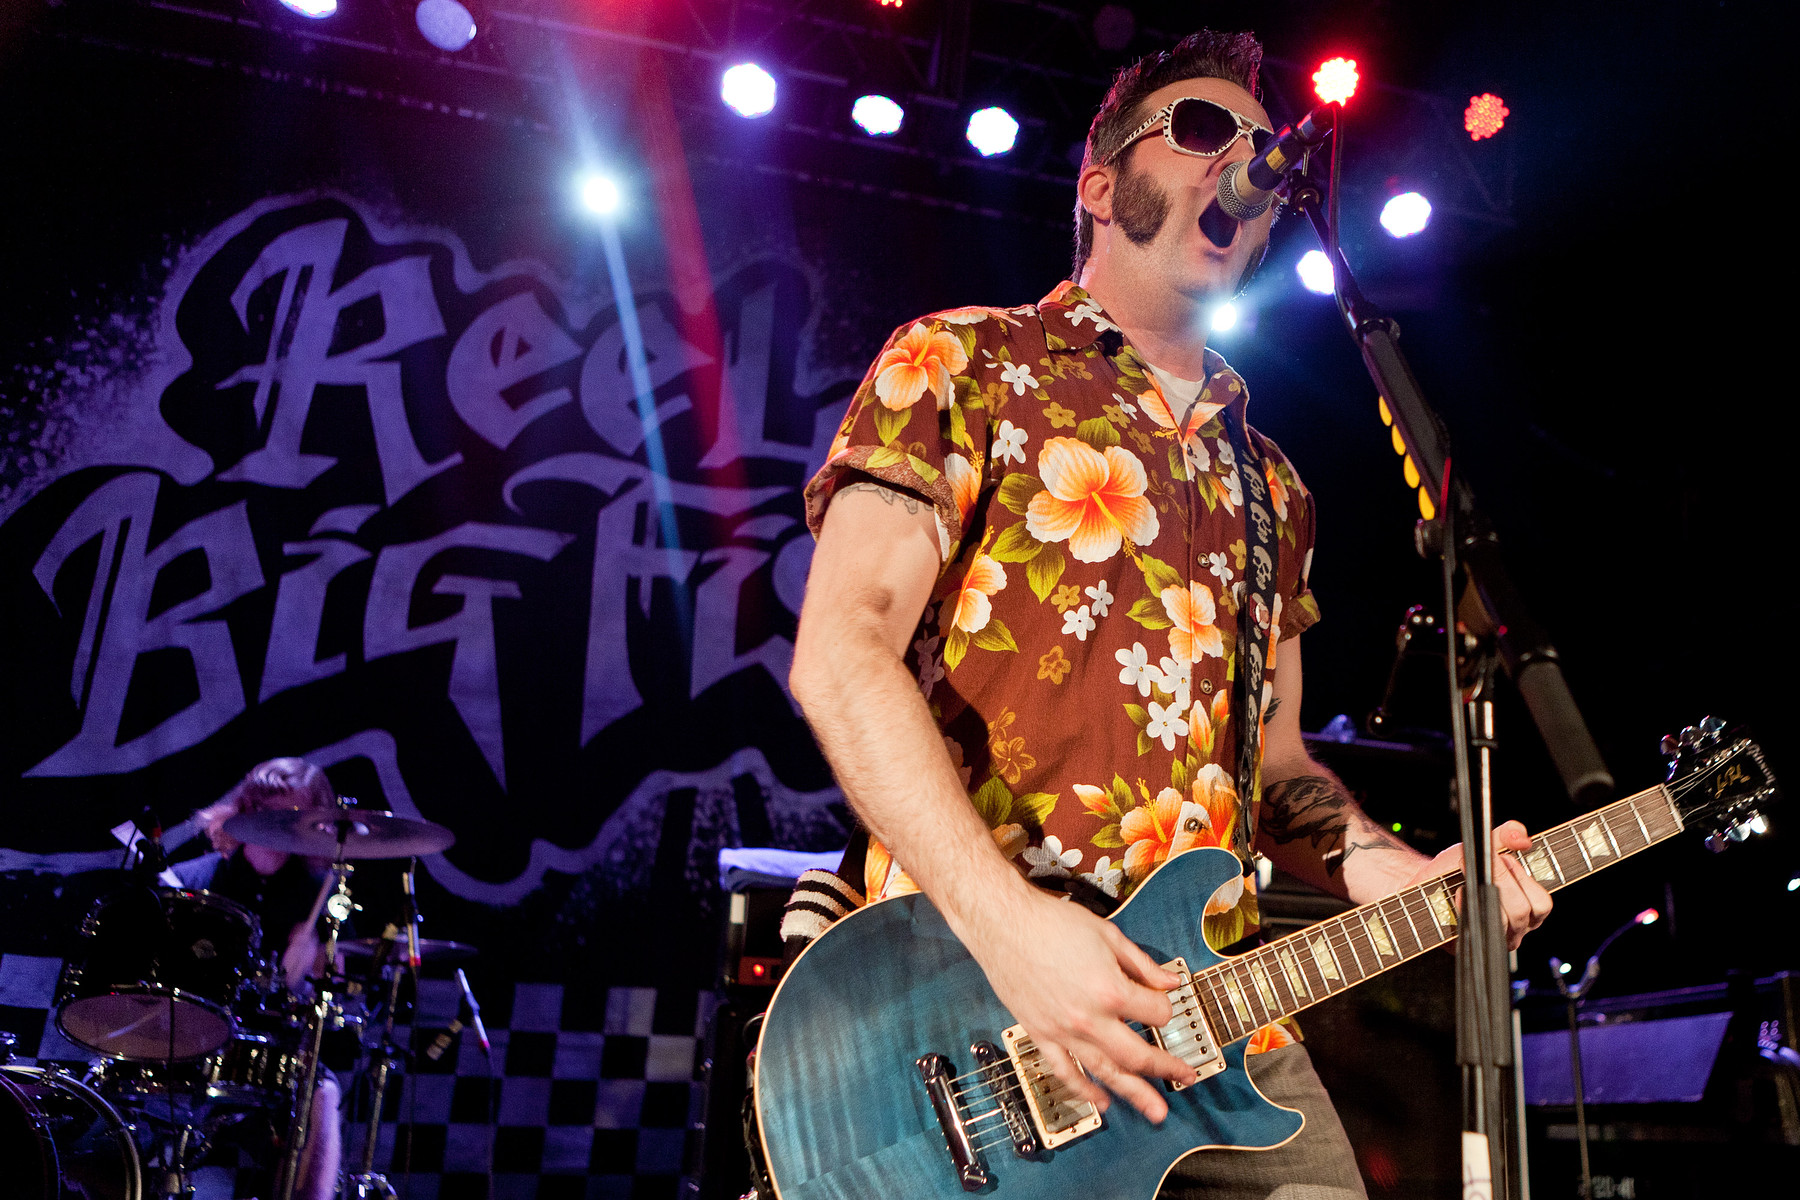 Giles smith leeds music photographer gallery reel for Reel big fish